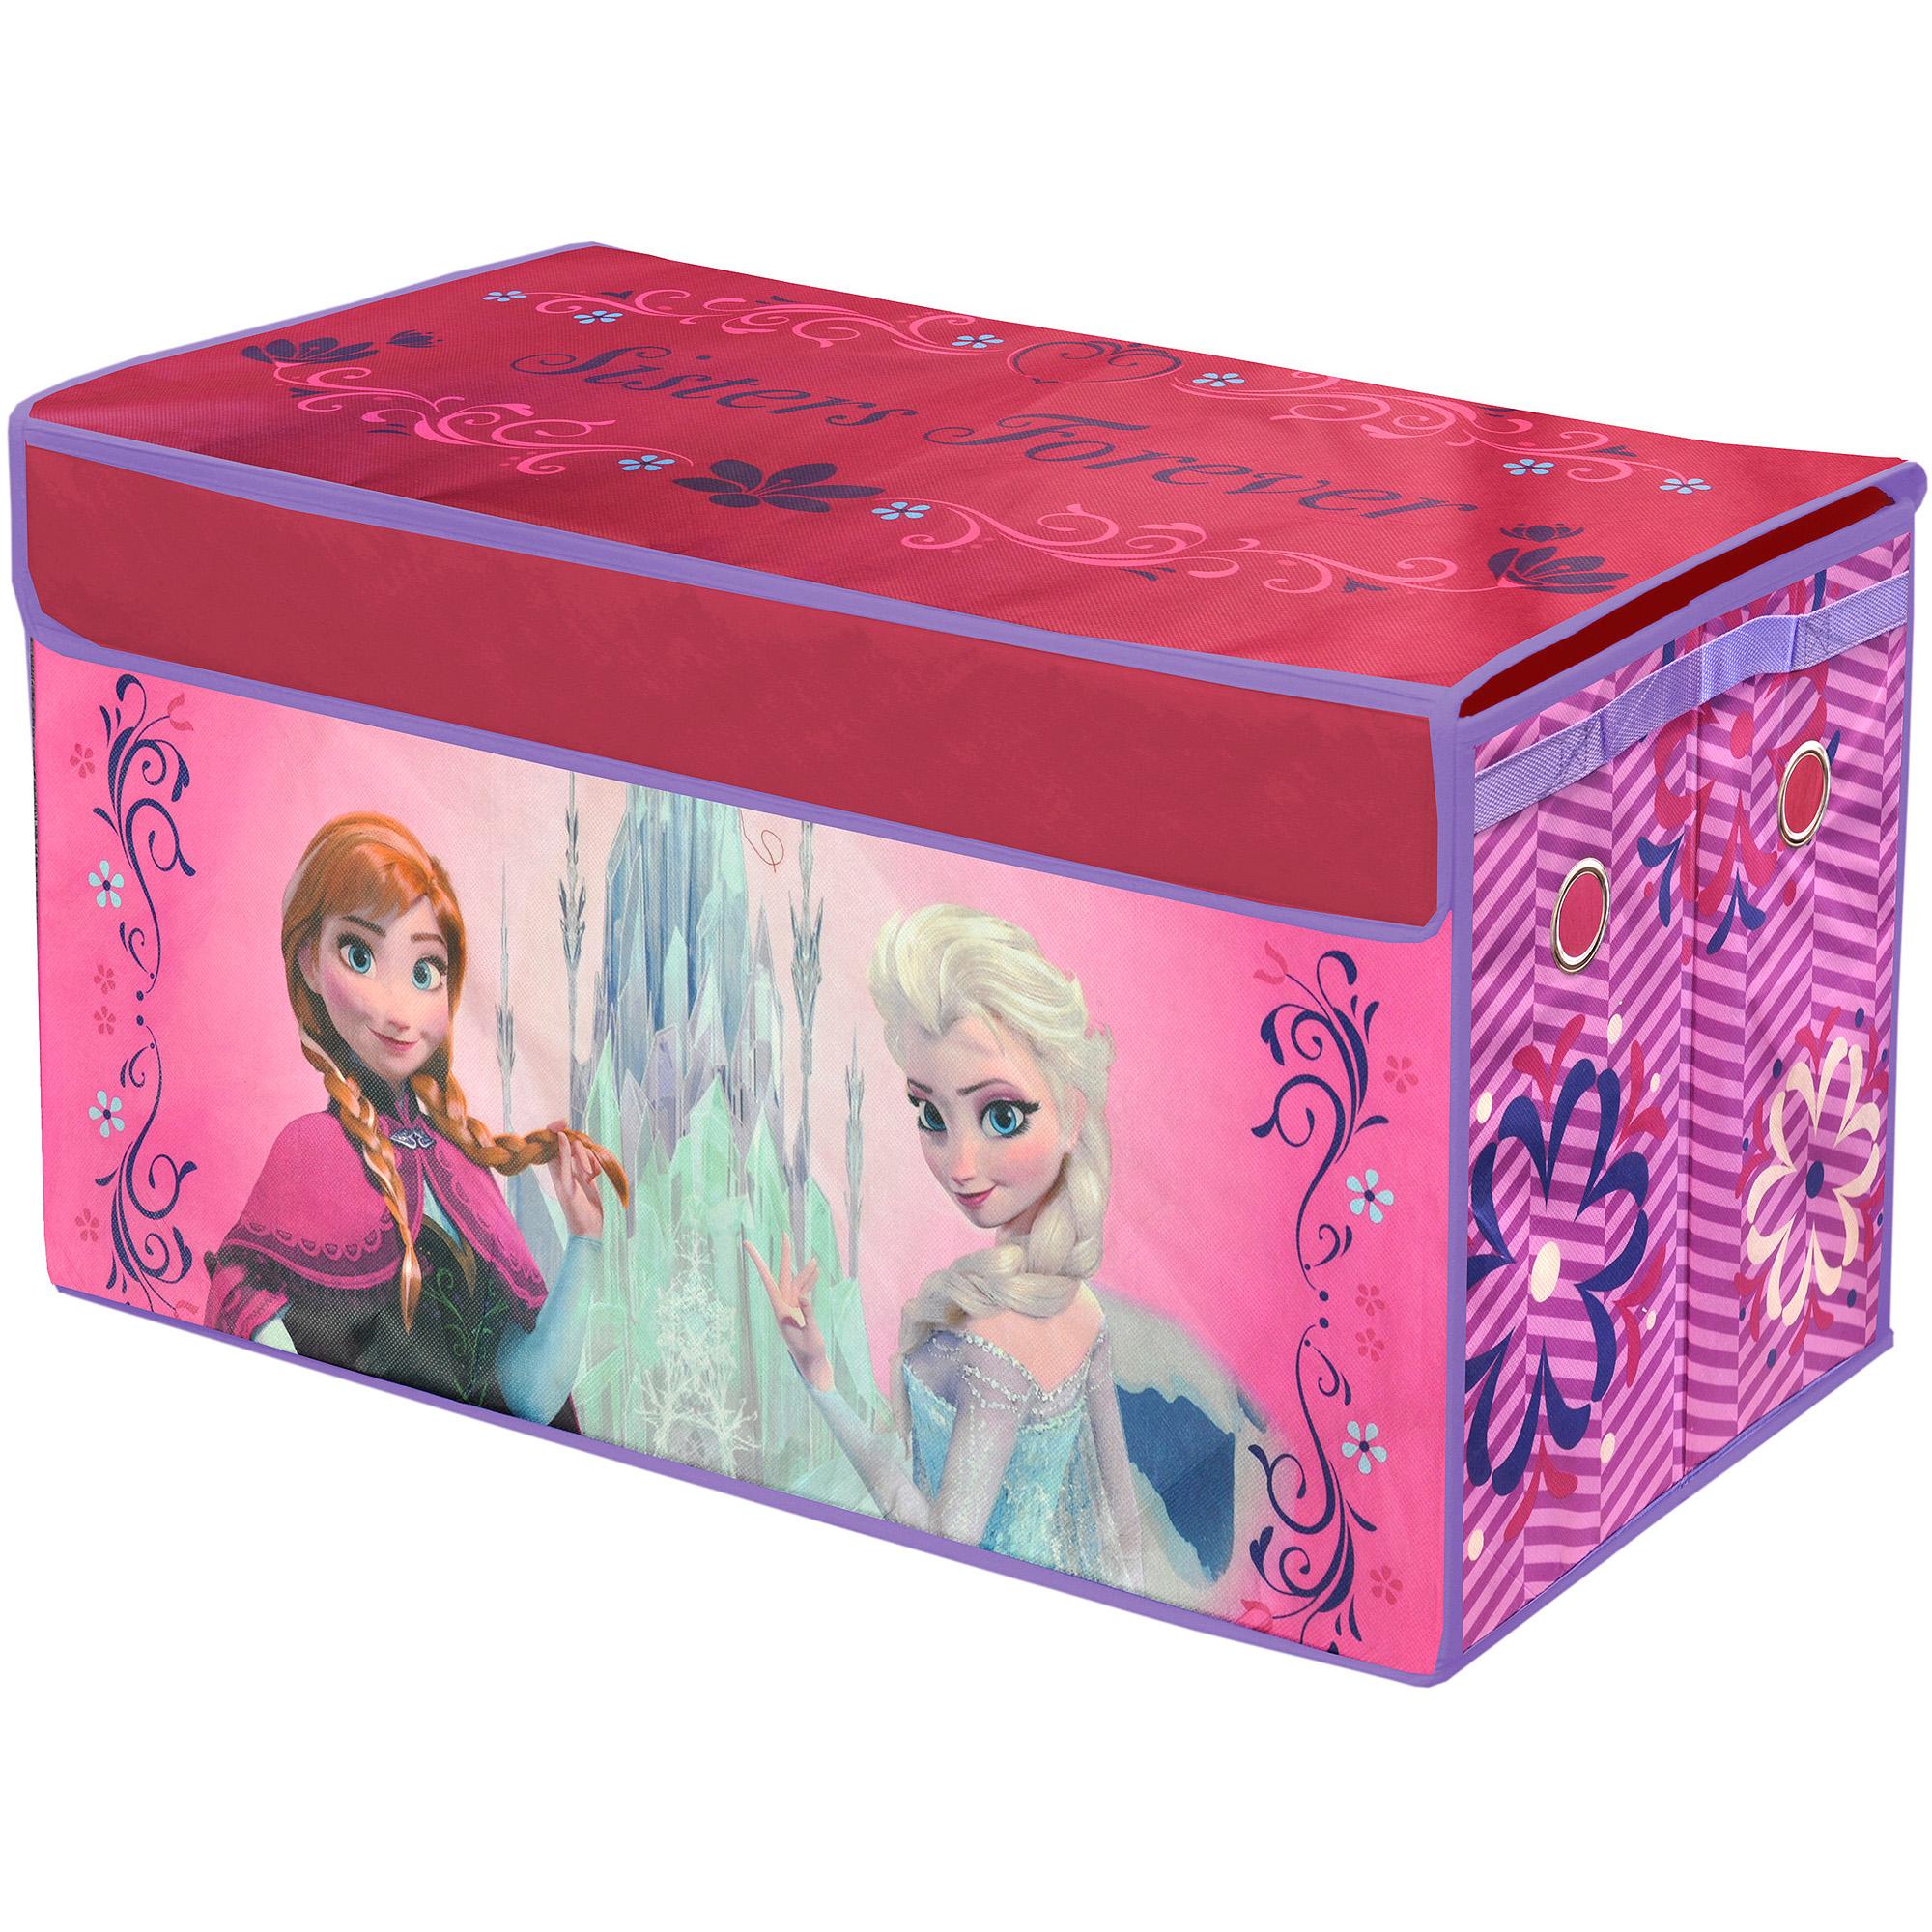 Frozen Oversized Soft Collapsible Storage Toy Box